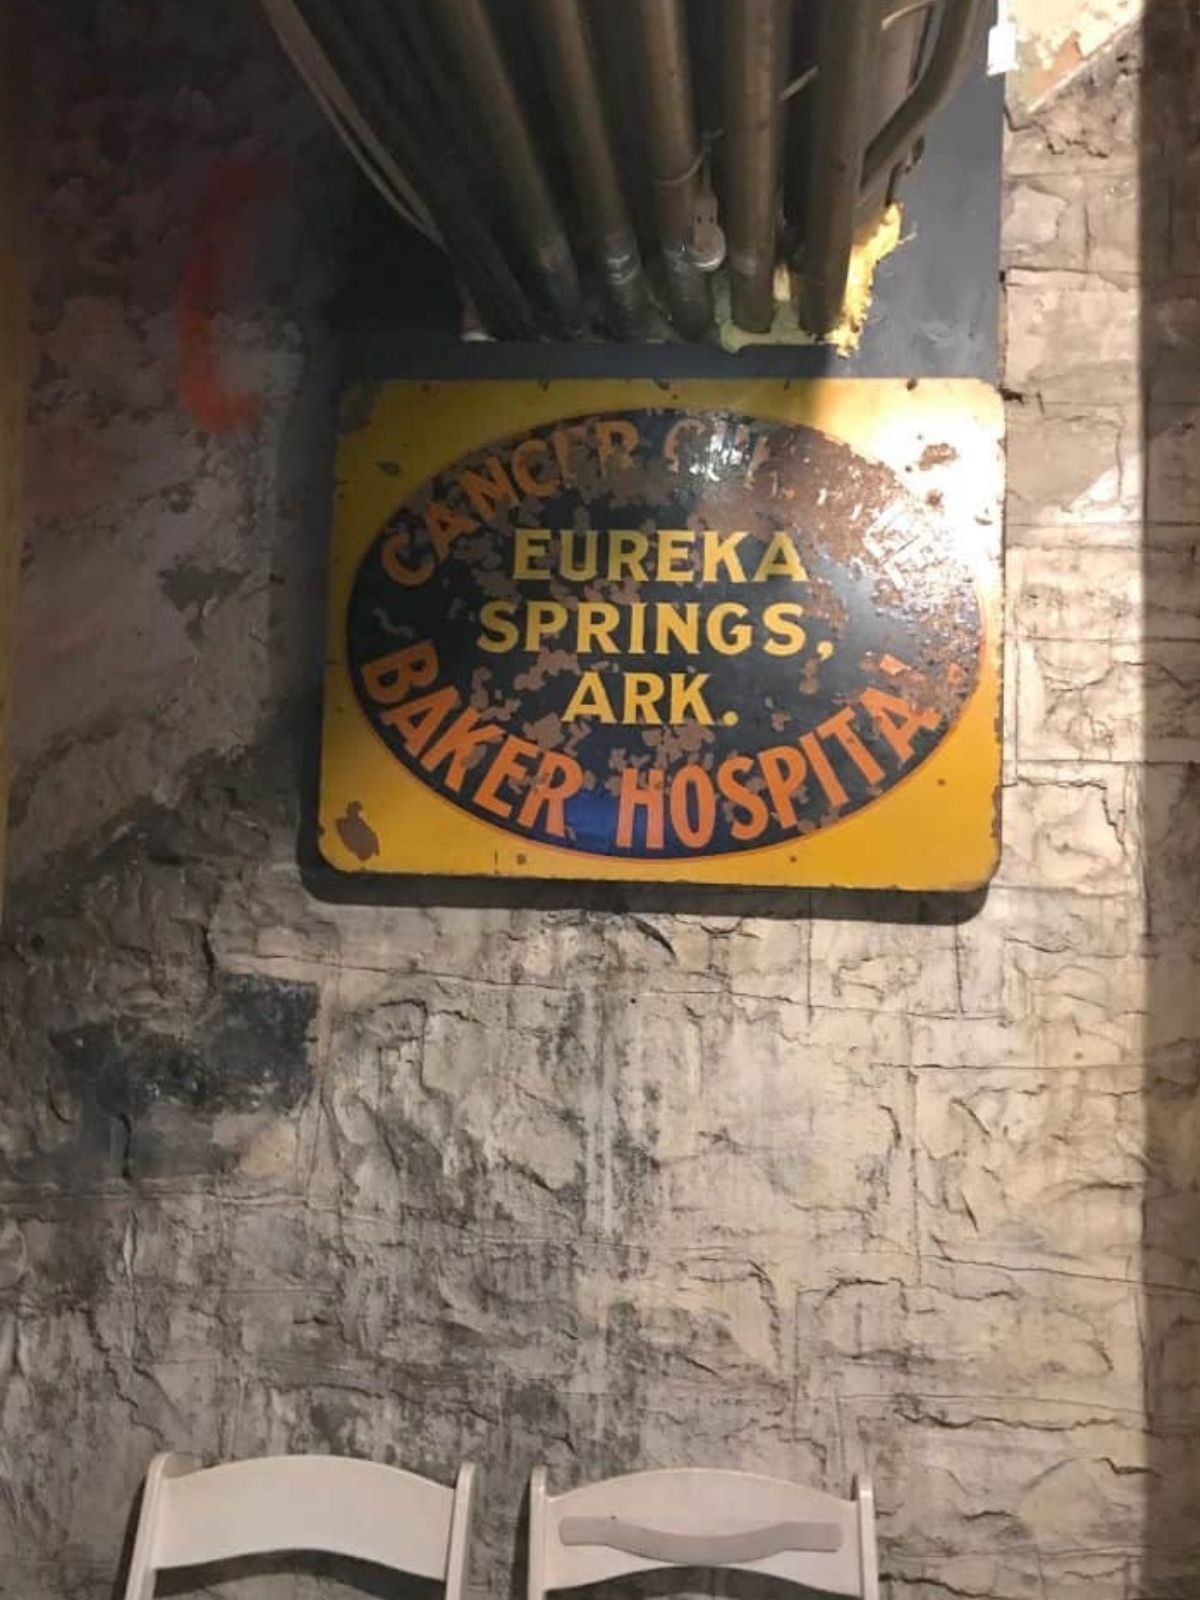 """A rusted metal sign in the basement of the crescent hotel that reads """"cancer center baker hospital eureka springs Arkansas."""""""